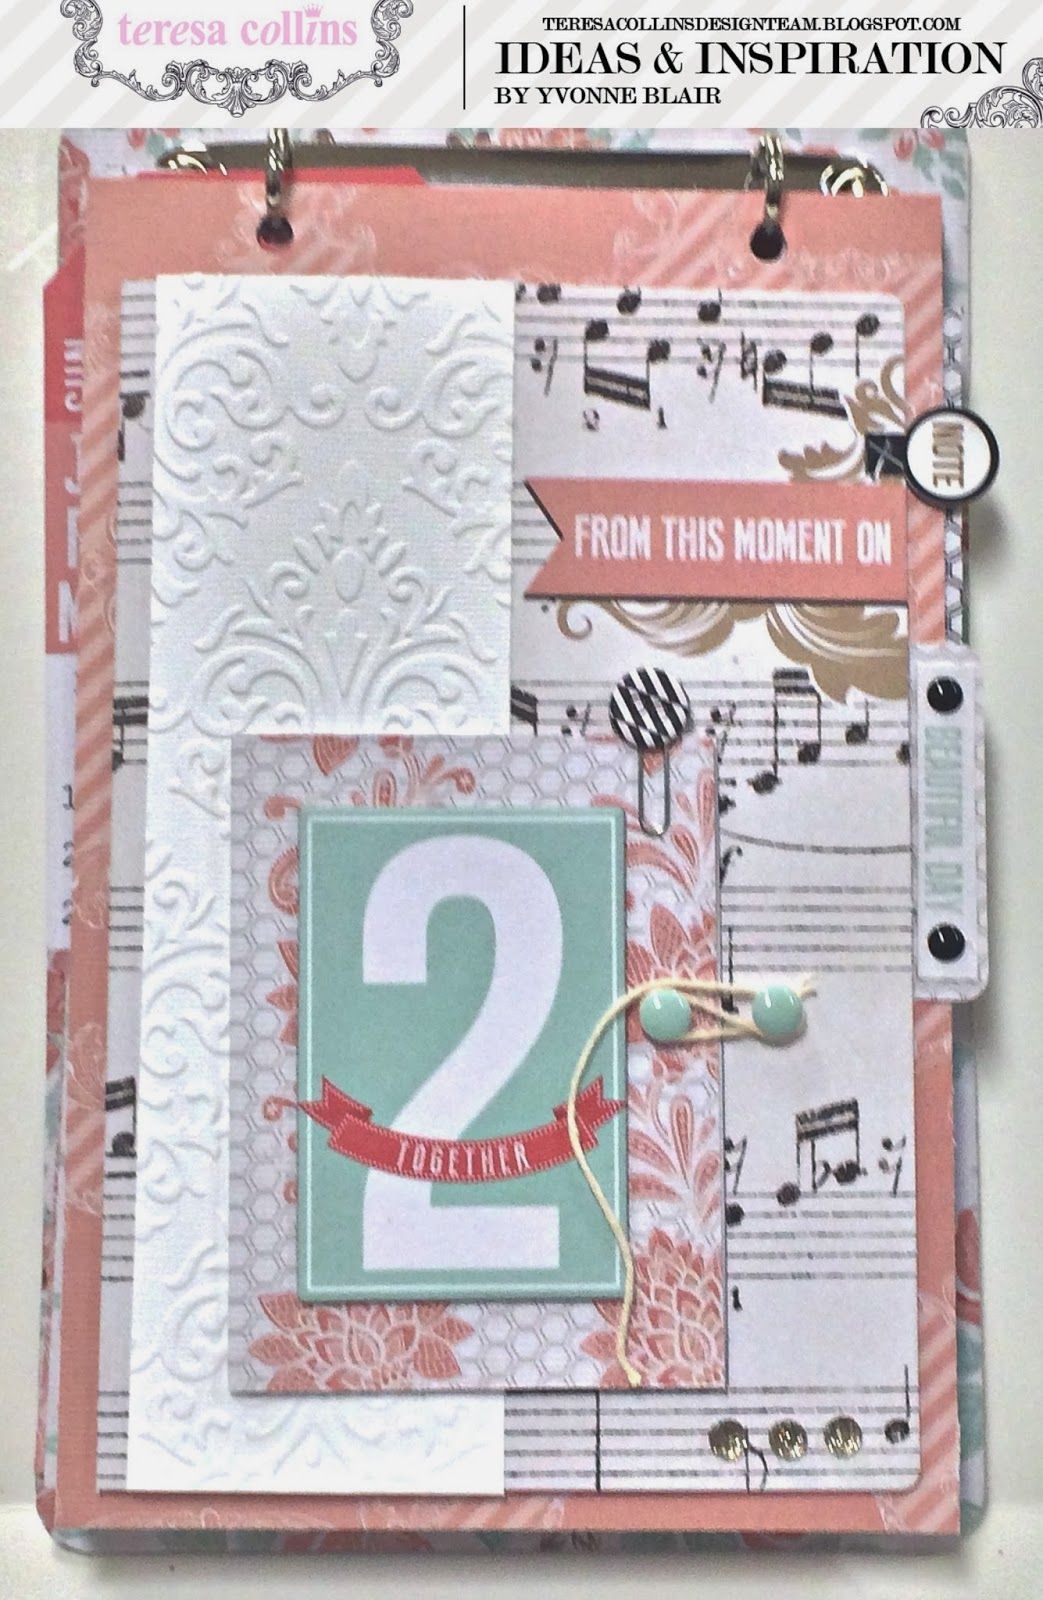 Scrapbook ideas mini books - 1000 Images About Mini Books On Pinterest Design Happy New Year And File Folder